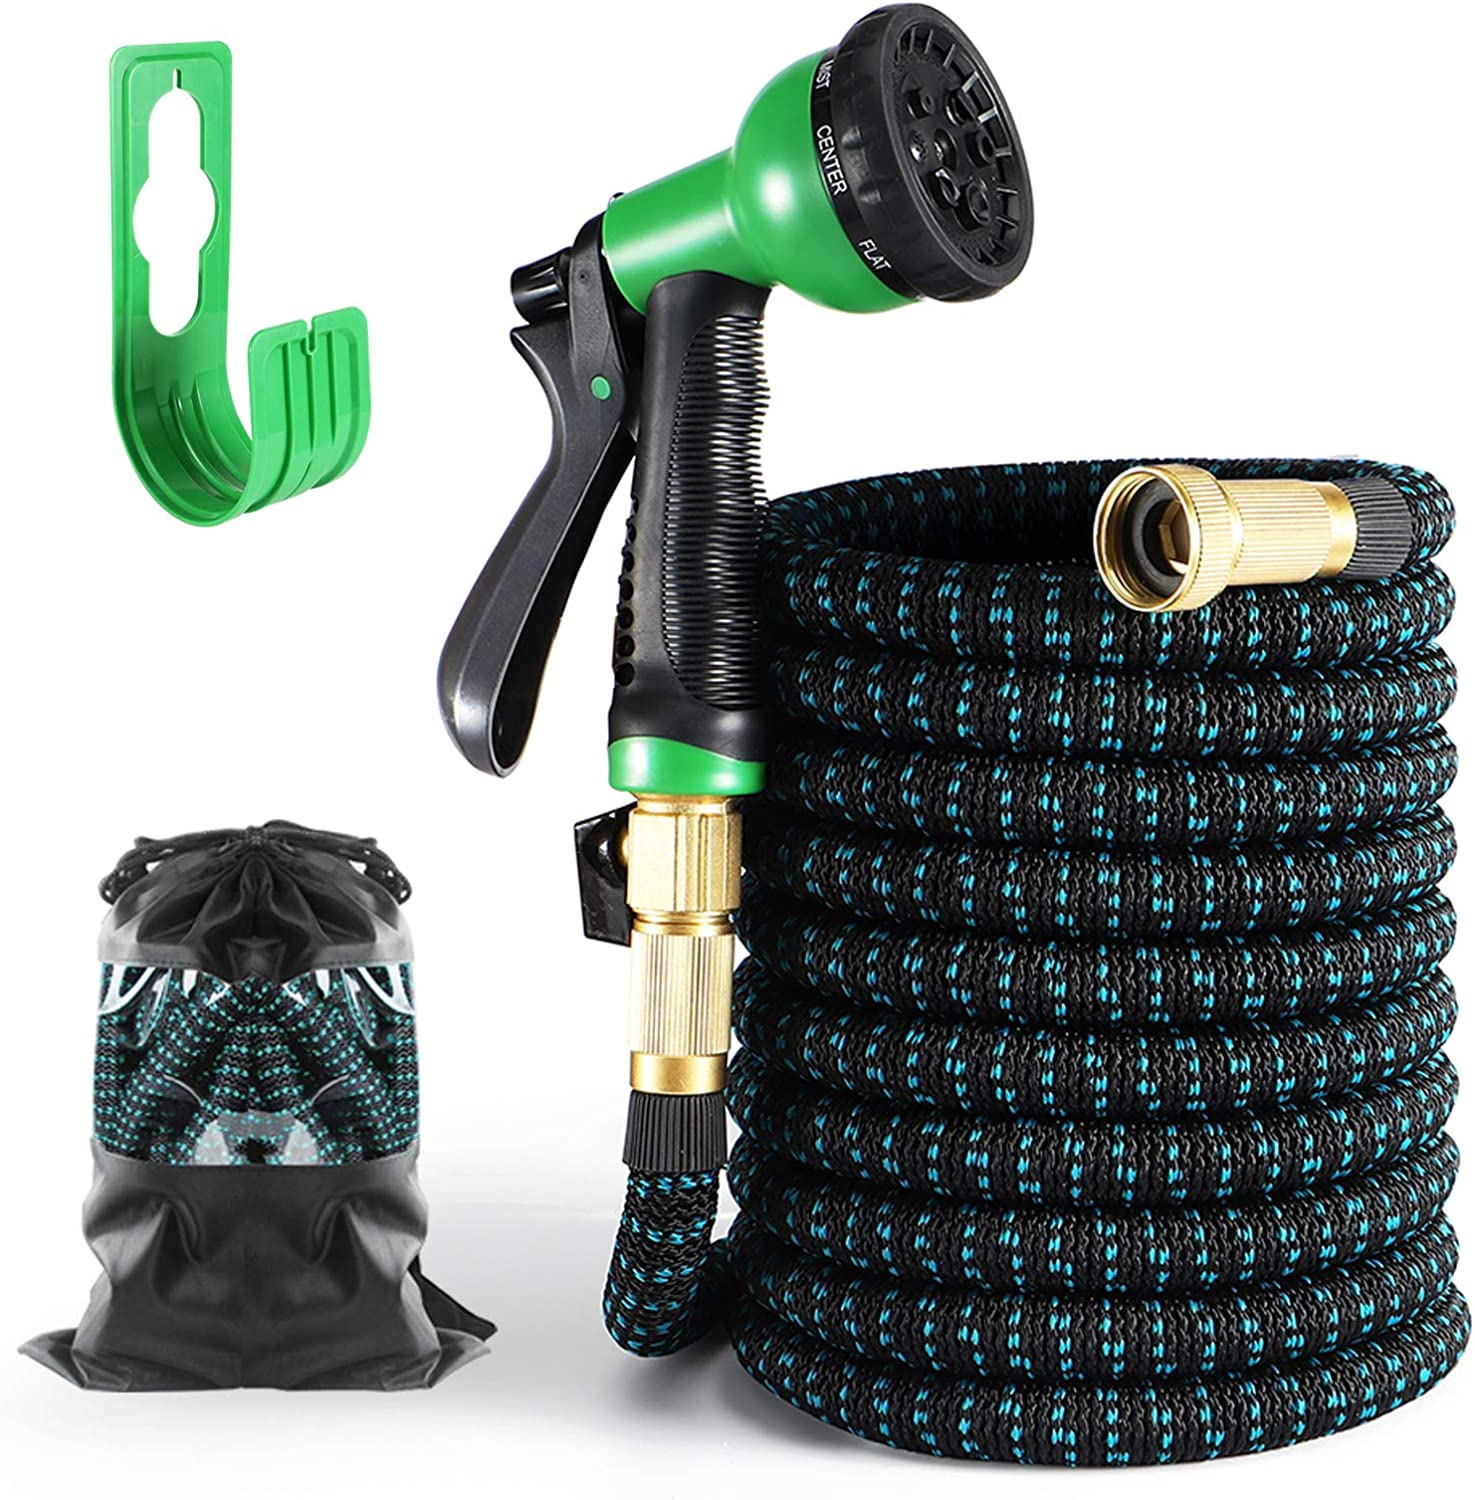 Expandable Garden Max 71% OFF Hose 75FT Bombing free shipping Durable Function Spra Water 8